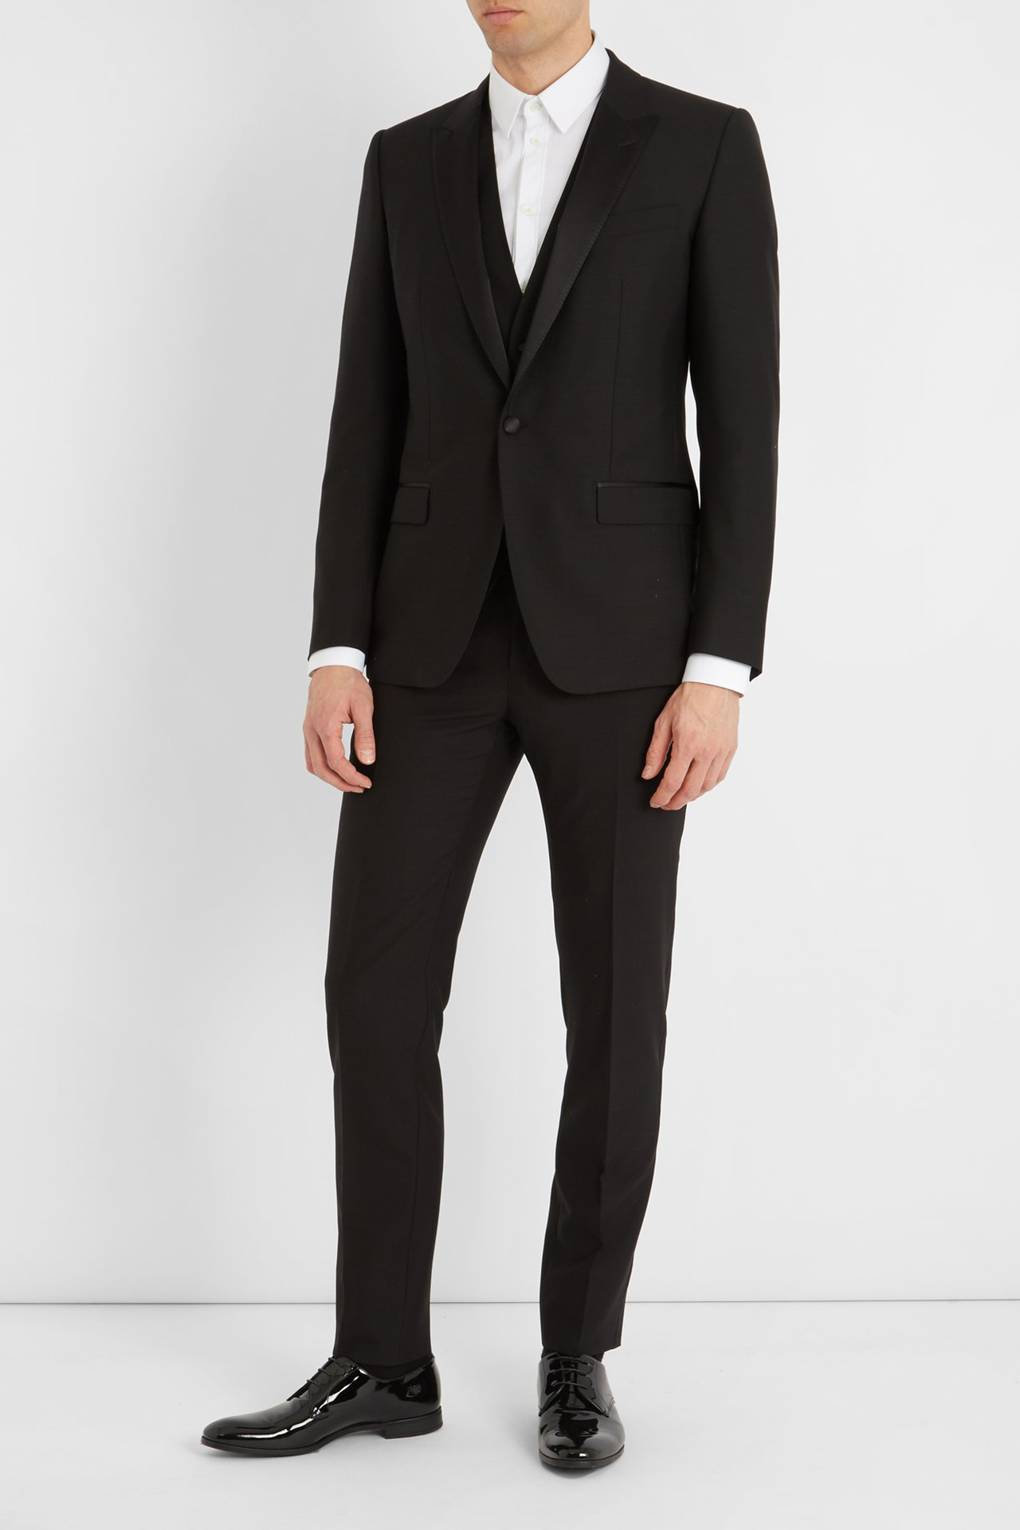 0b029ac11f5 How to do black tie in summer